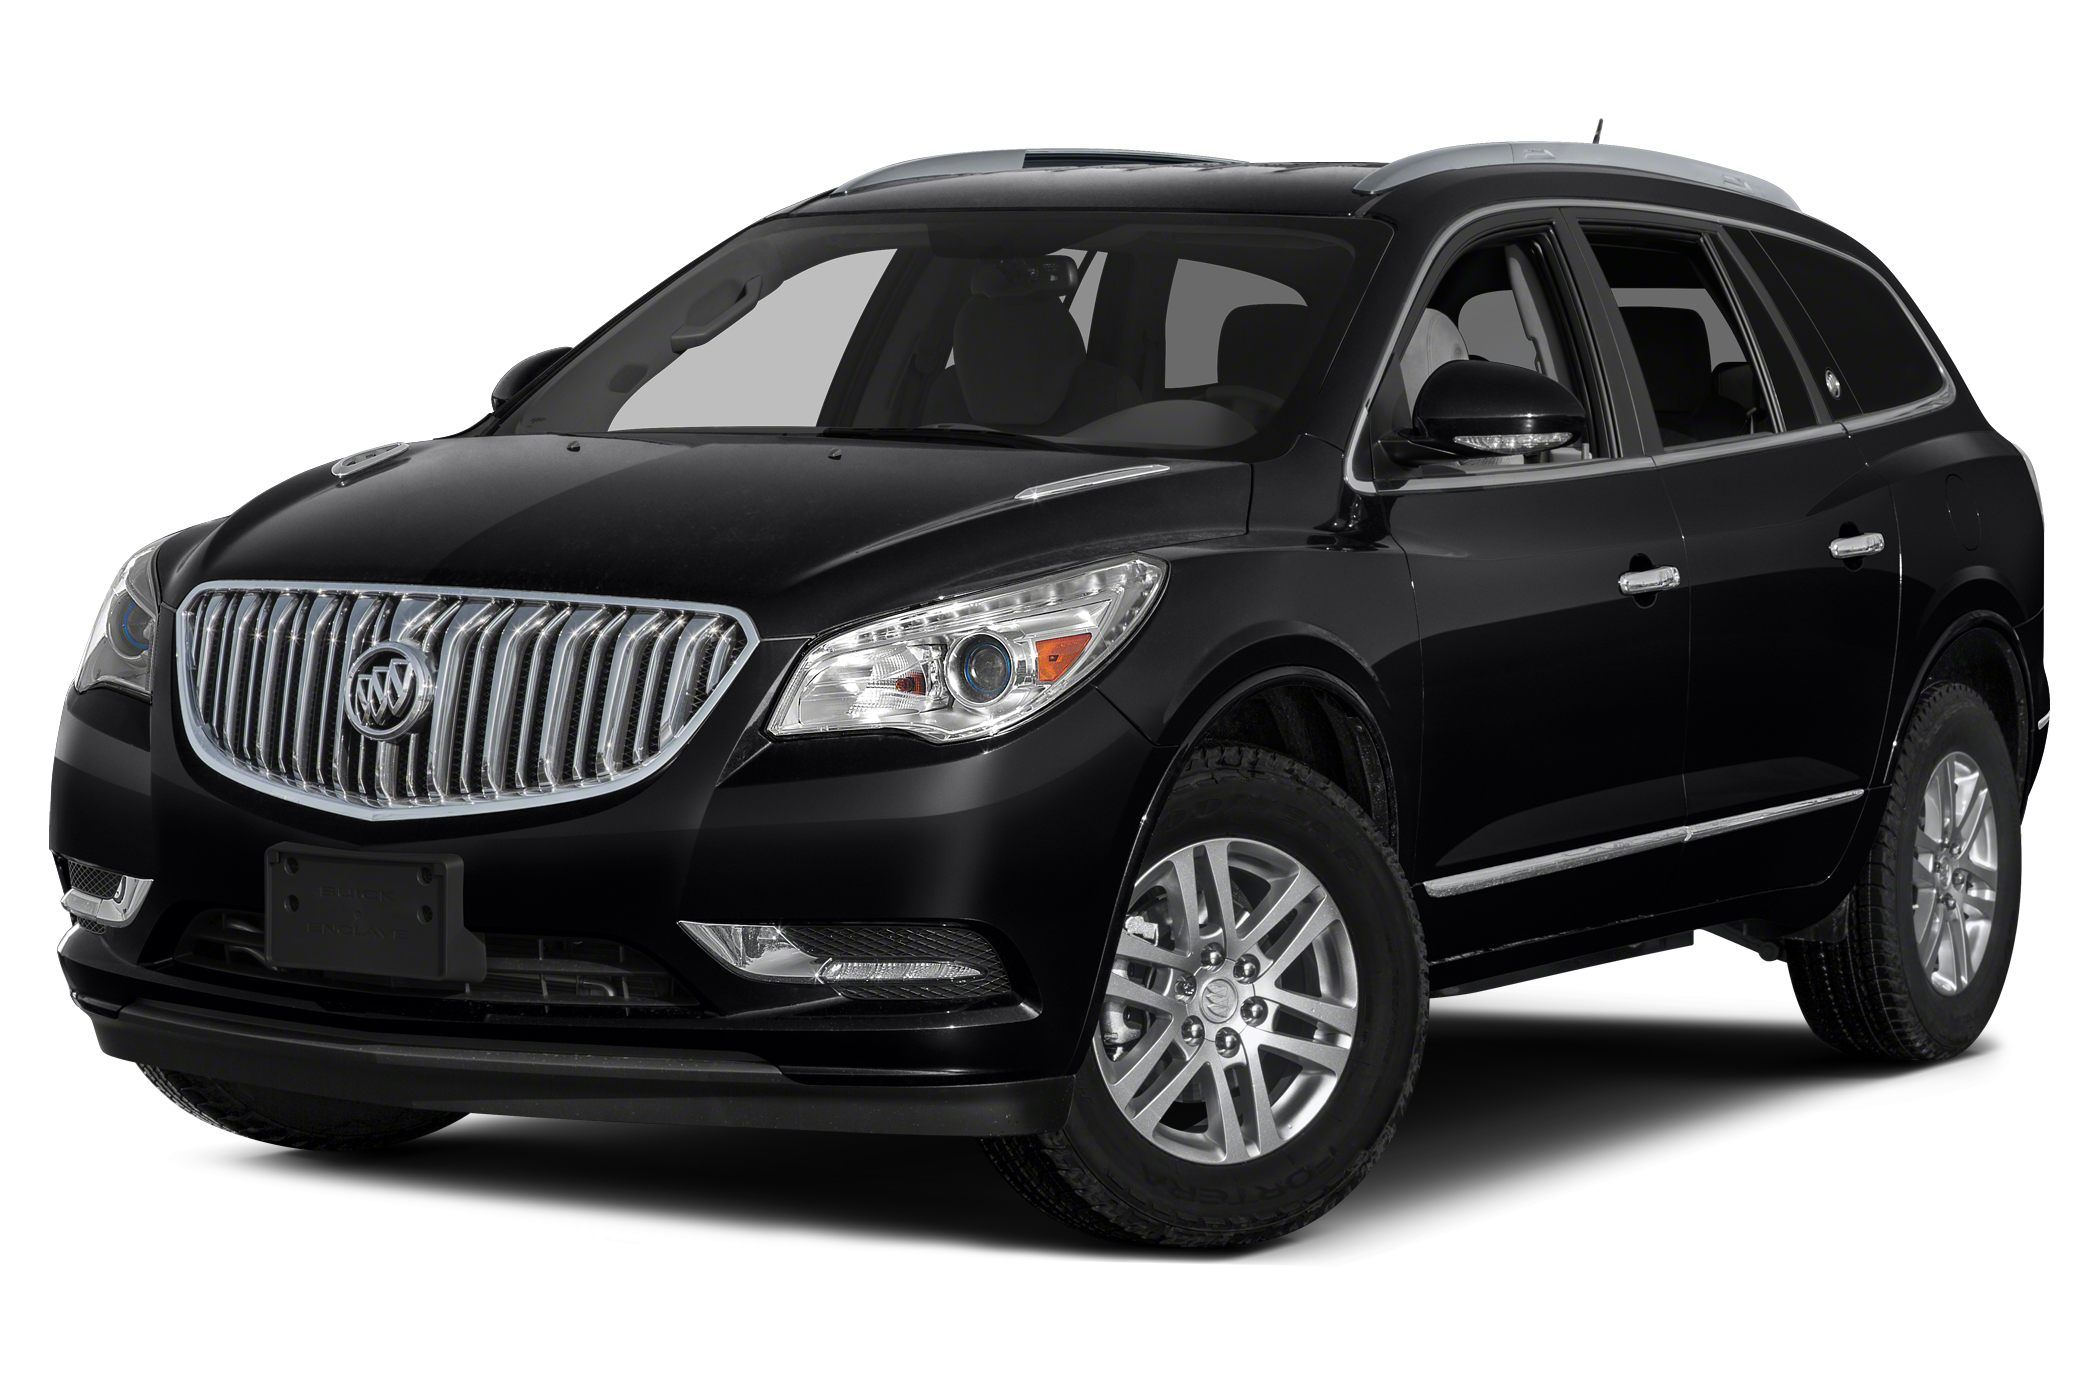 2014 buick enclave red this is my wife s current car and she absolutely loves it